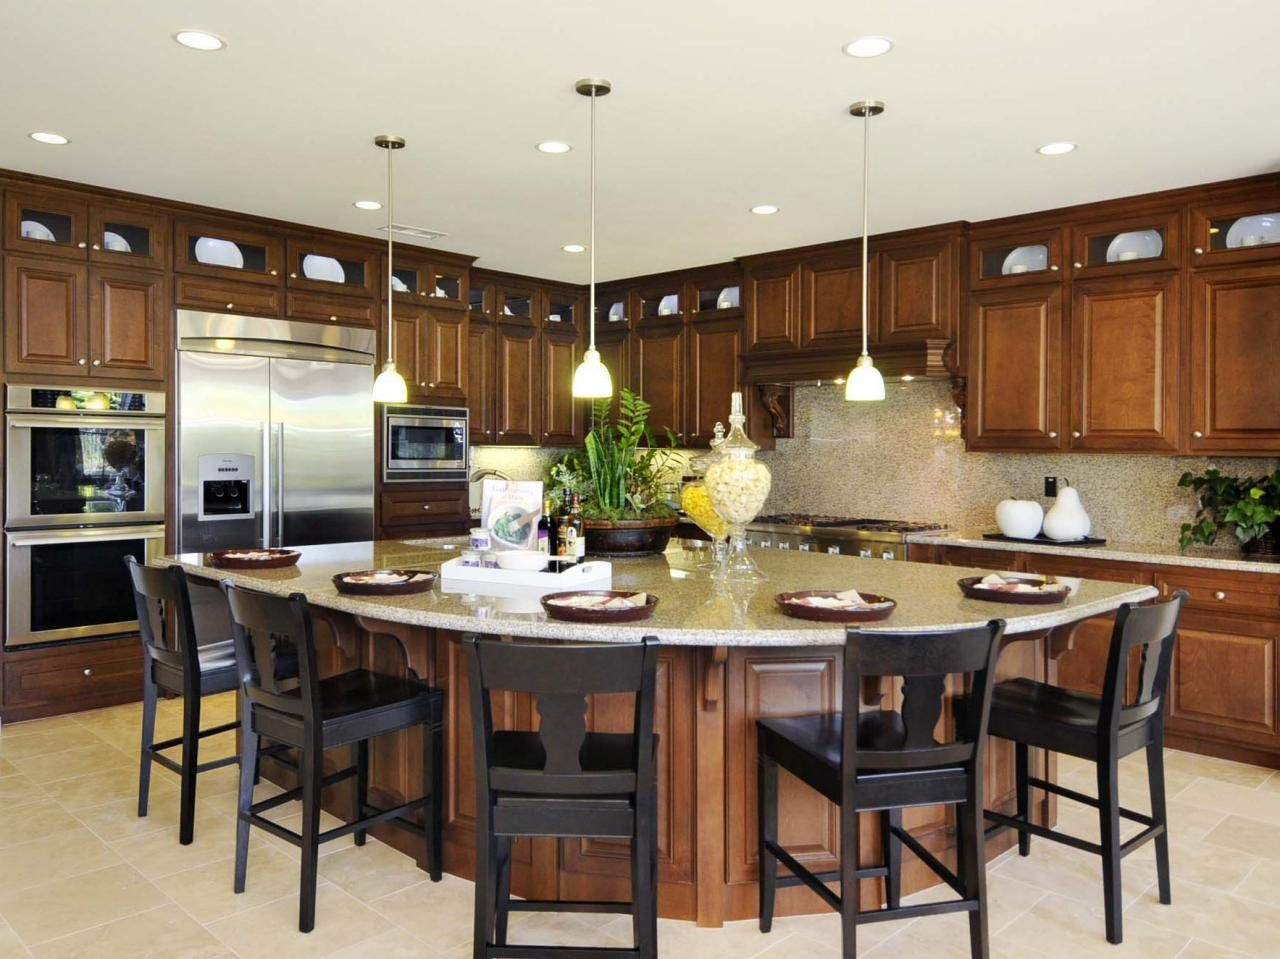 Large Kitchen Island Designs And Plans: Kitchen Island Design Ideas: Pictures, Options & Tips